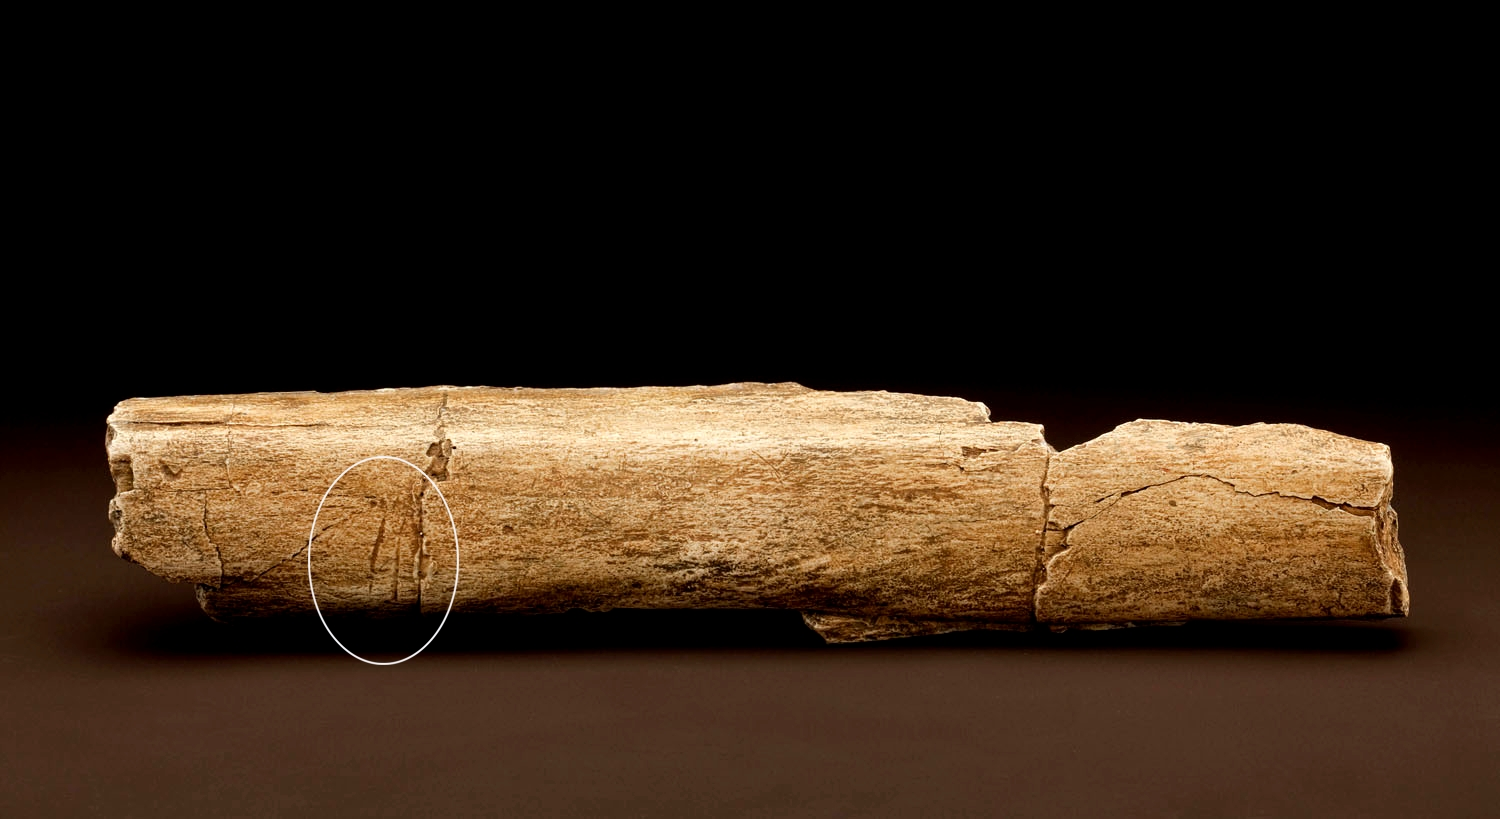 Elephas recki fossil rib with cut marks. Image courtesy of Chip Clark, Smithsonian Institution.